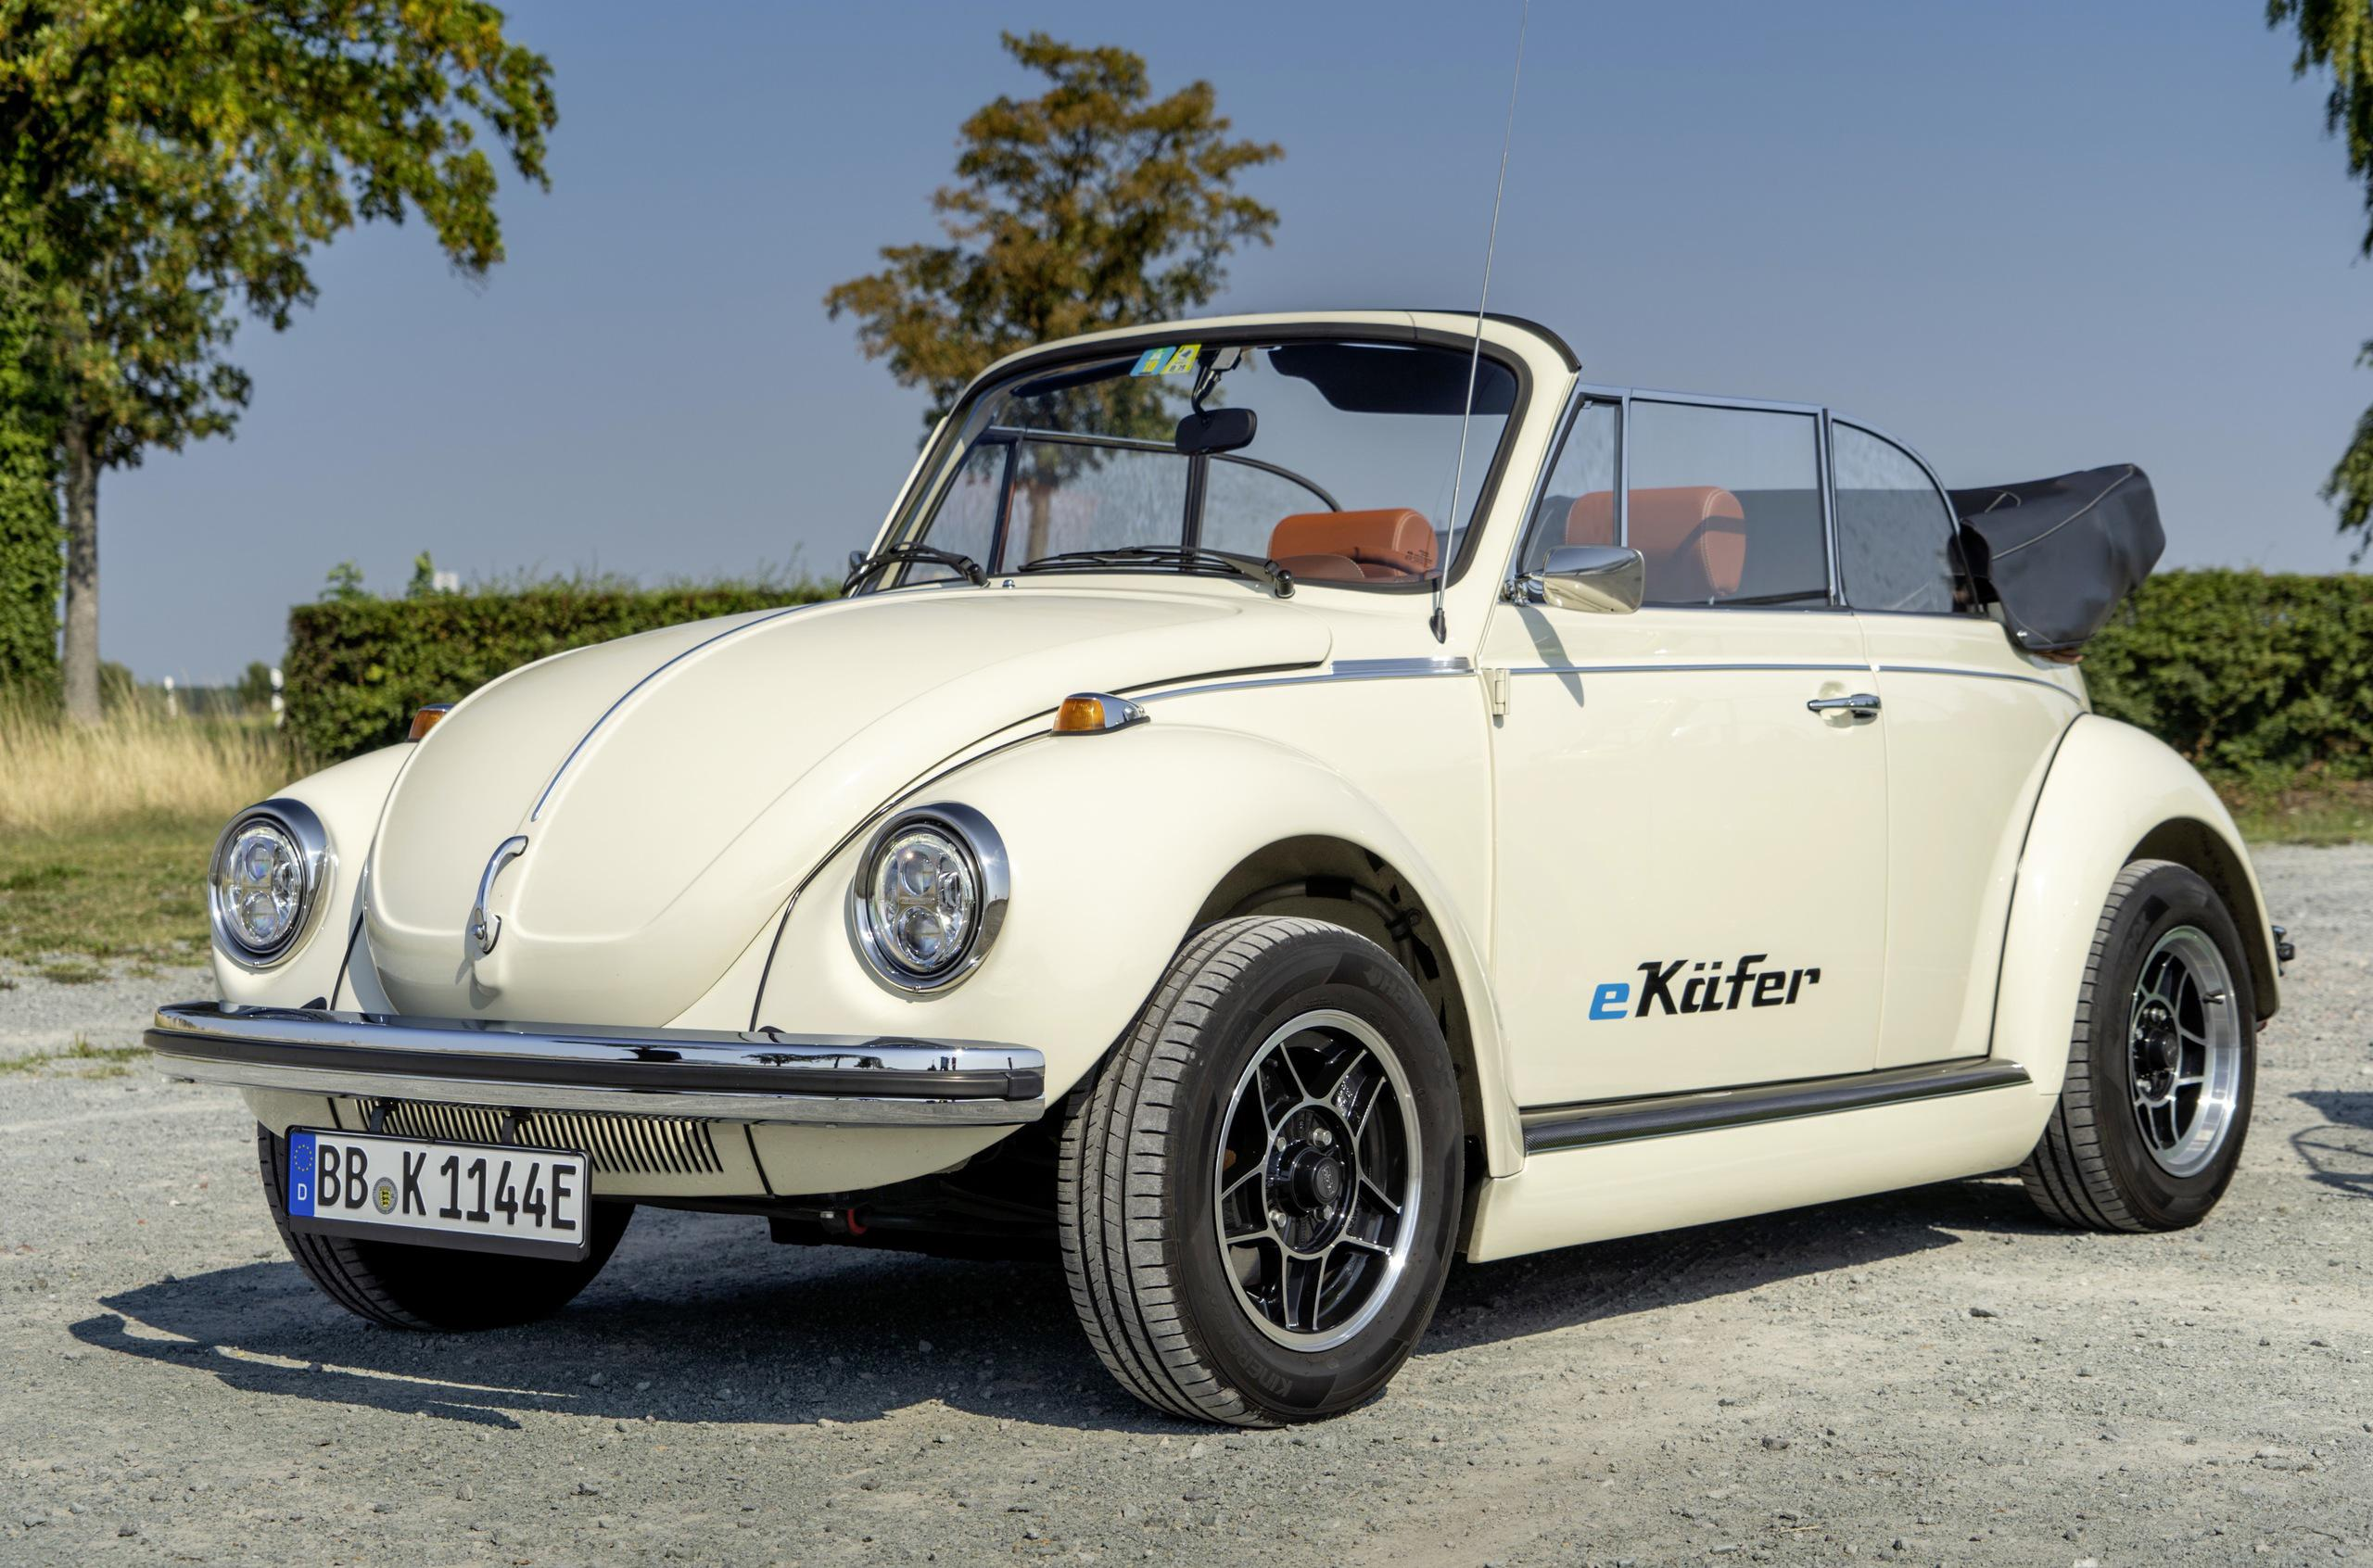 VW will be coming to the IAA Frankfurt show this year with an electric conversion of the vintage Beetle. Volkswagen Group Components is responsible for the project.